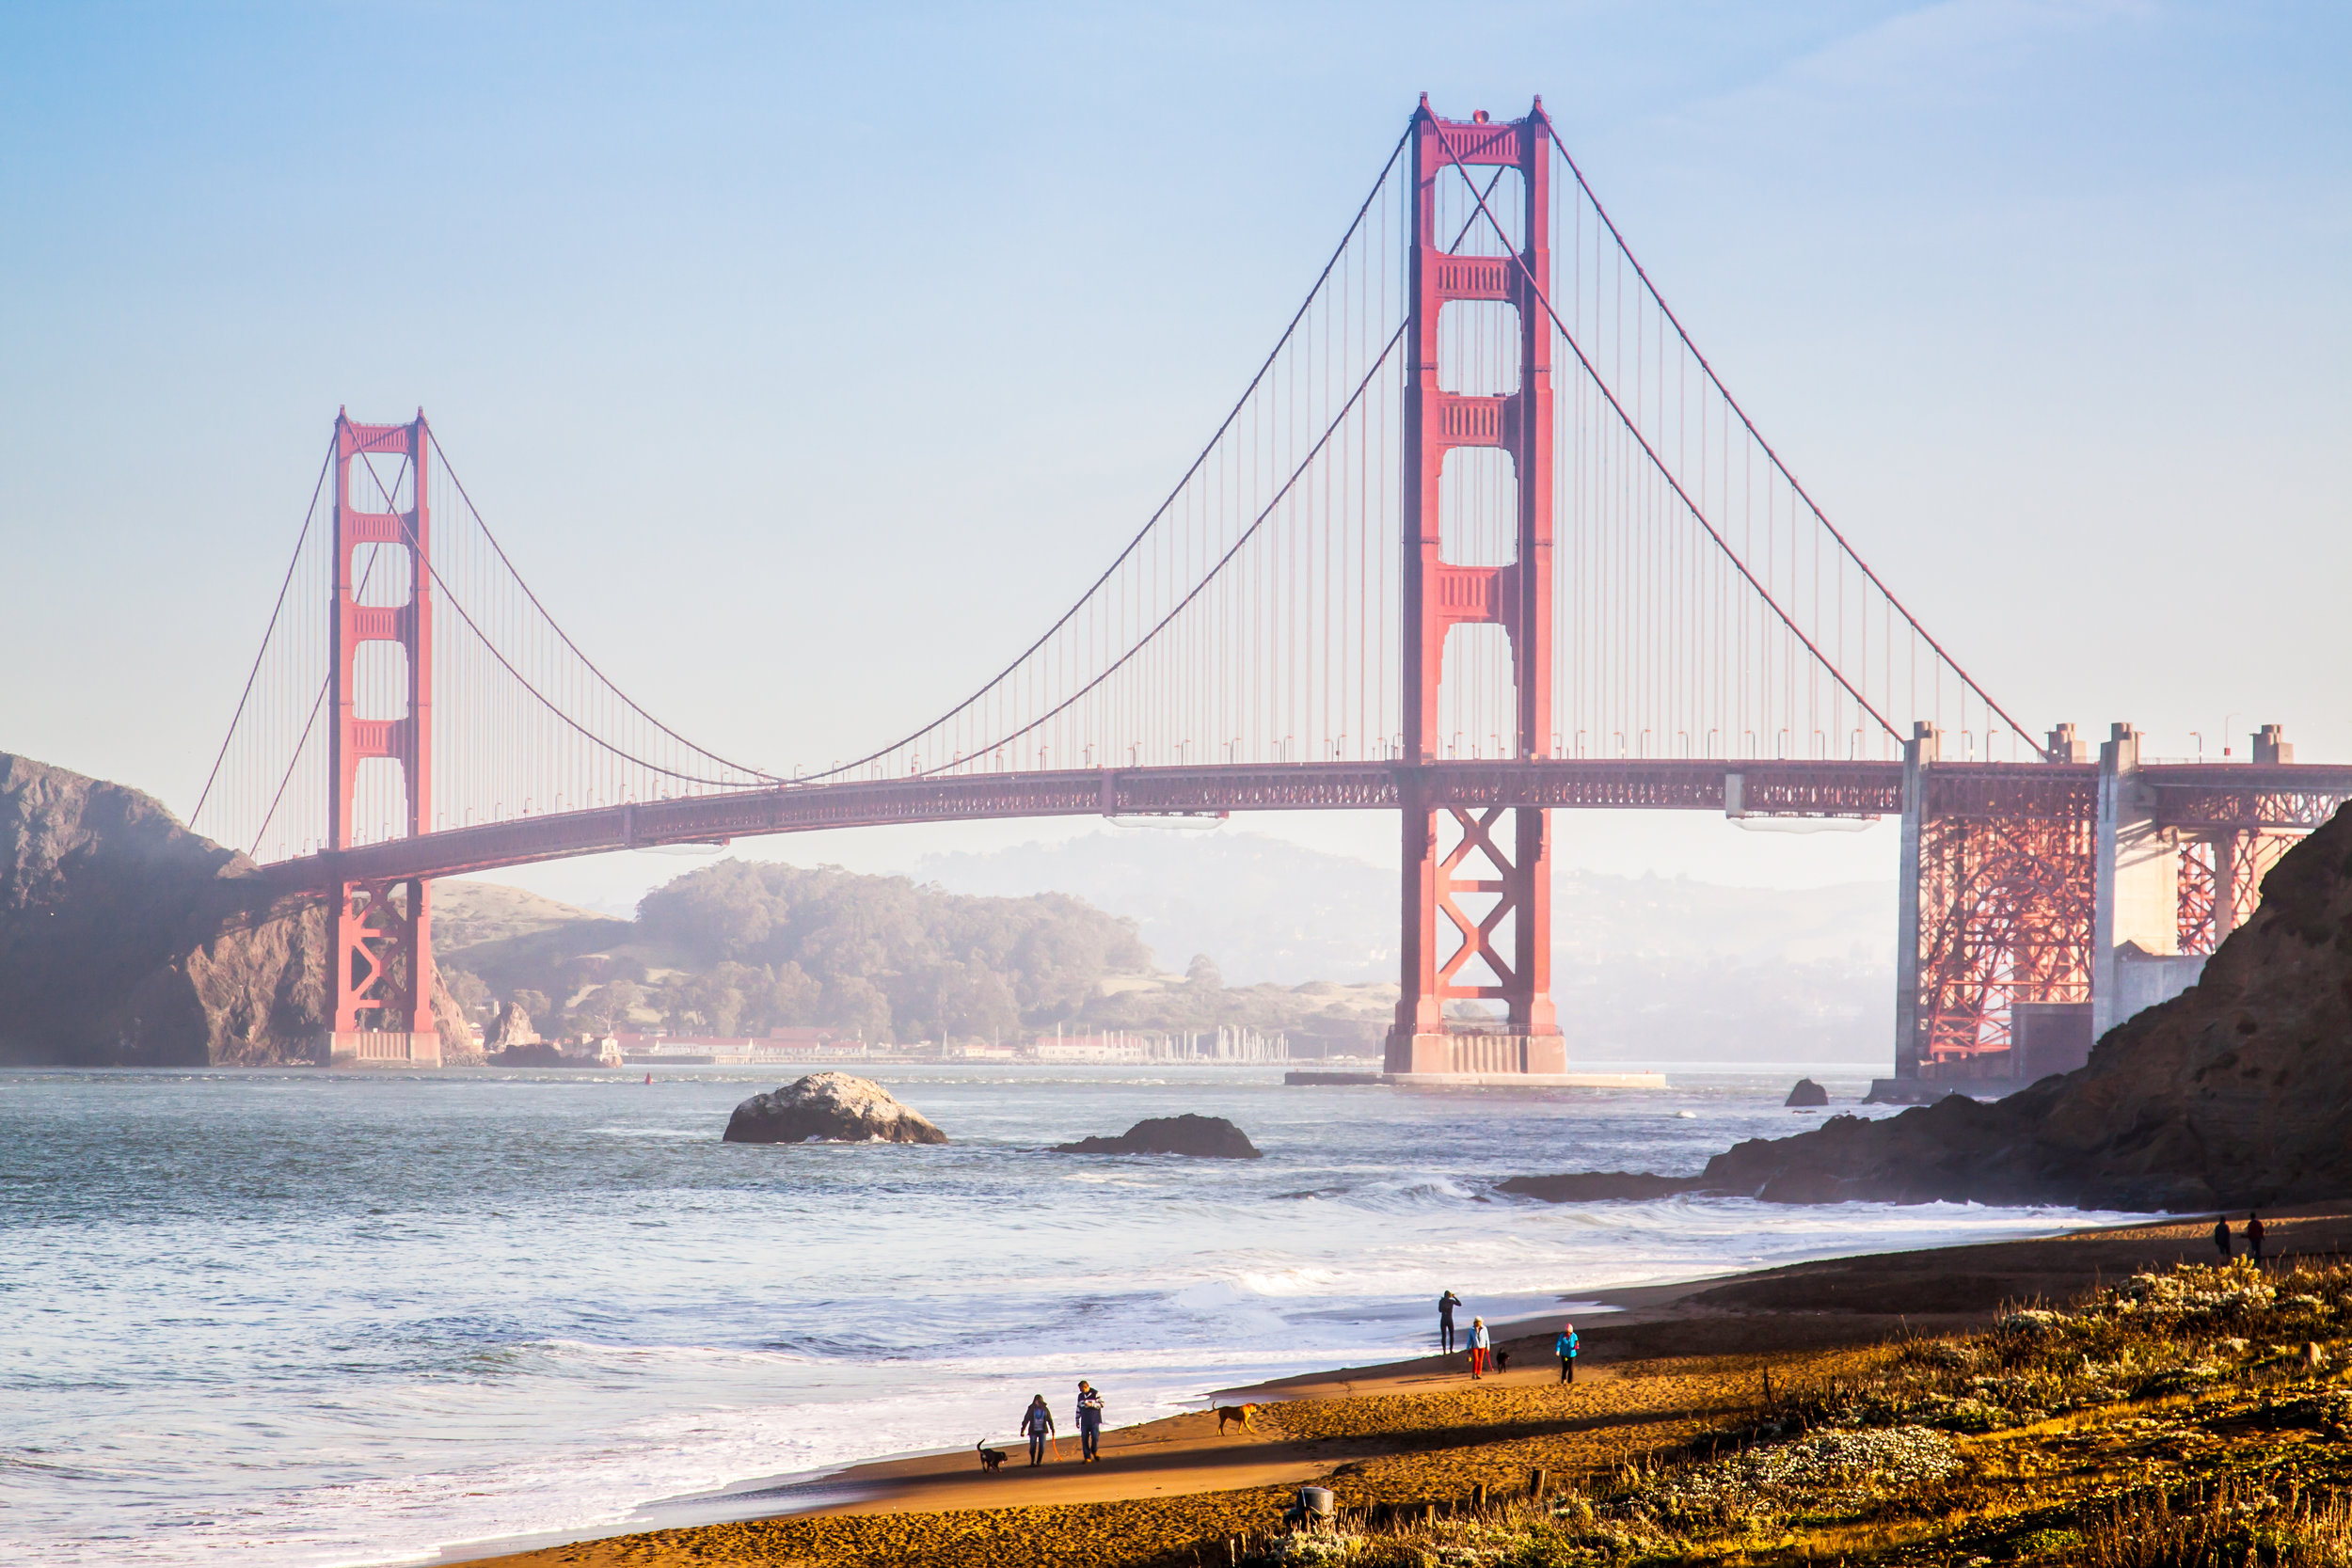 Did you say you want a good view of the Golden Gate Bridge? Baker Beach delivers!